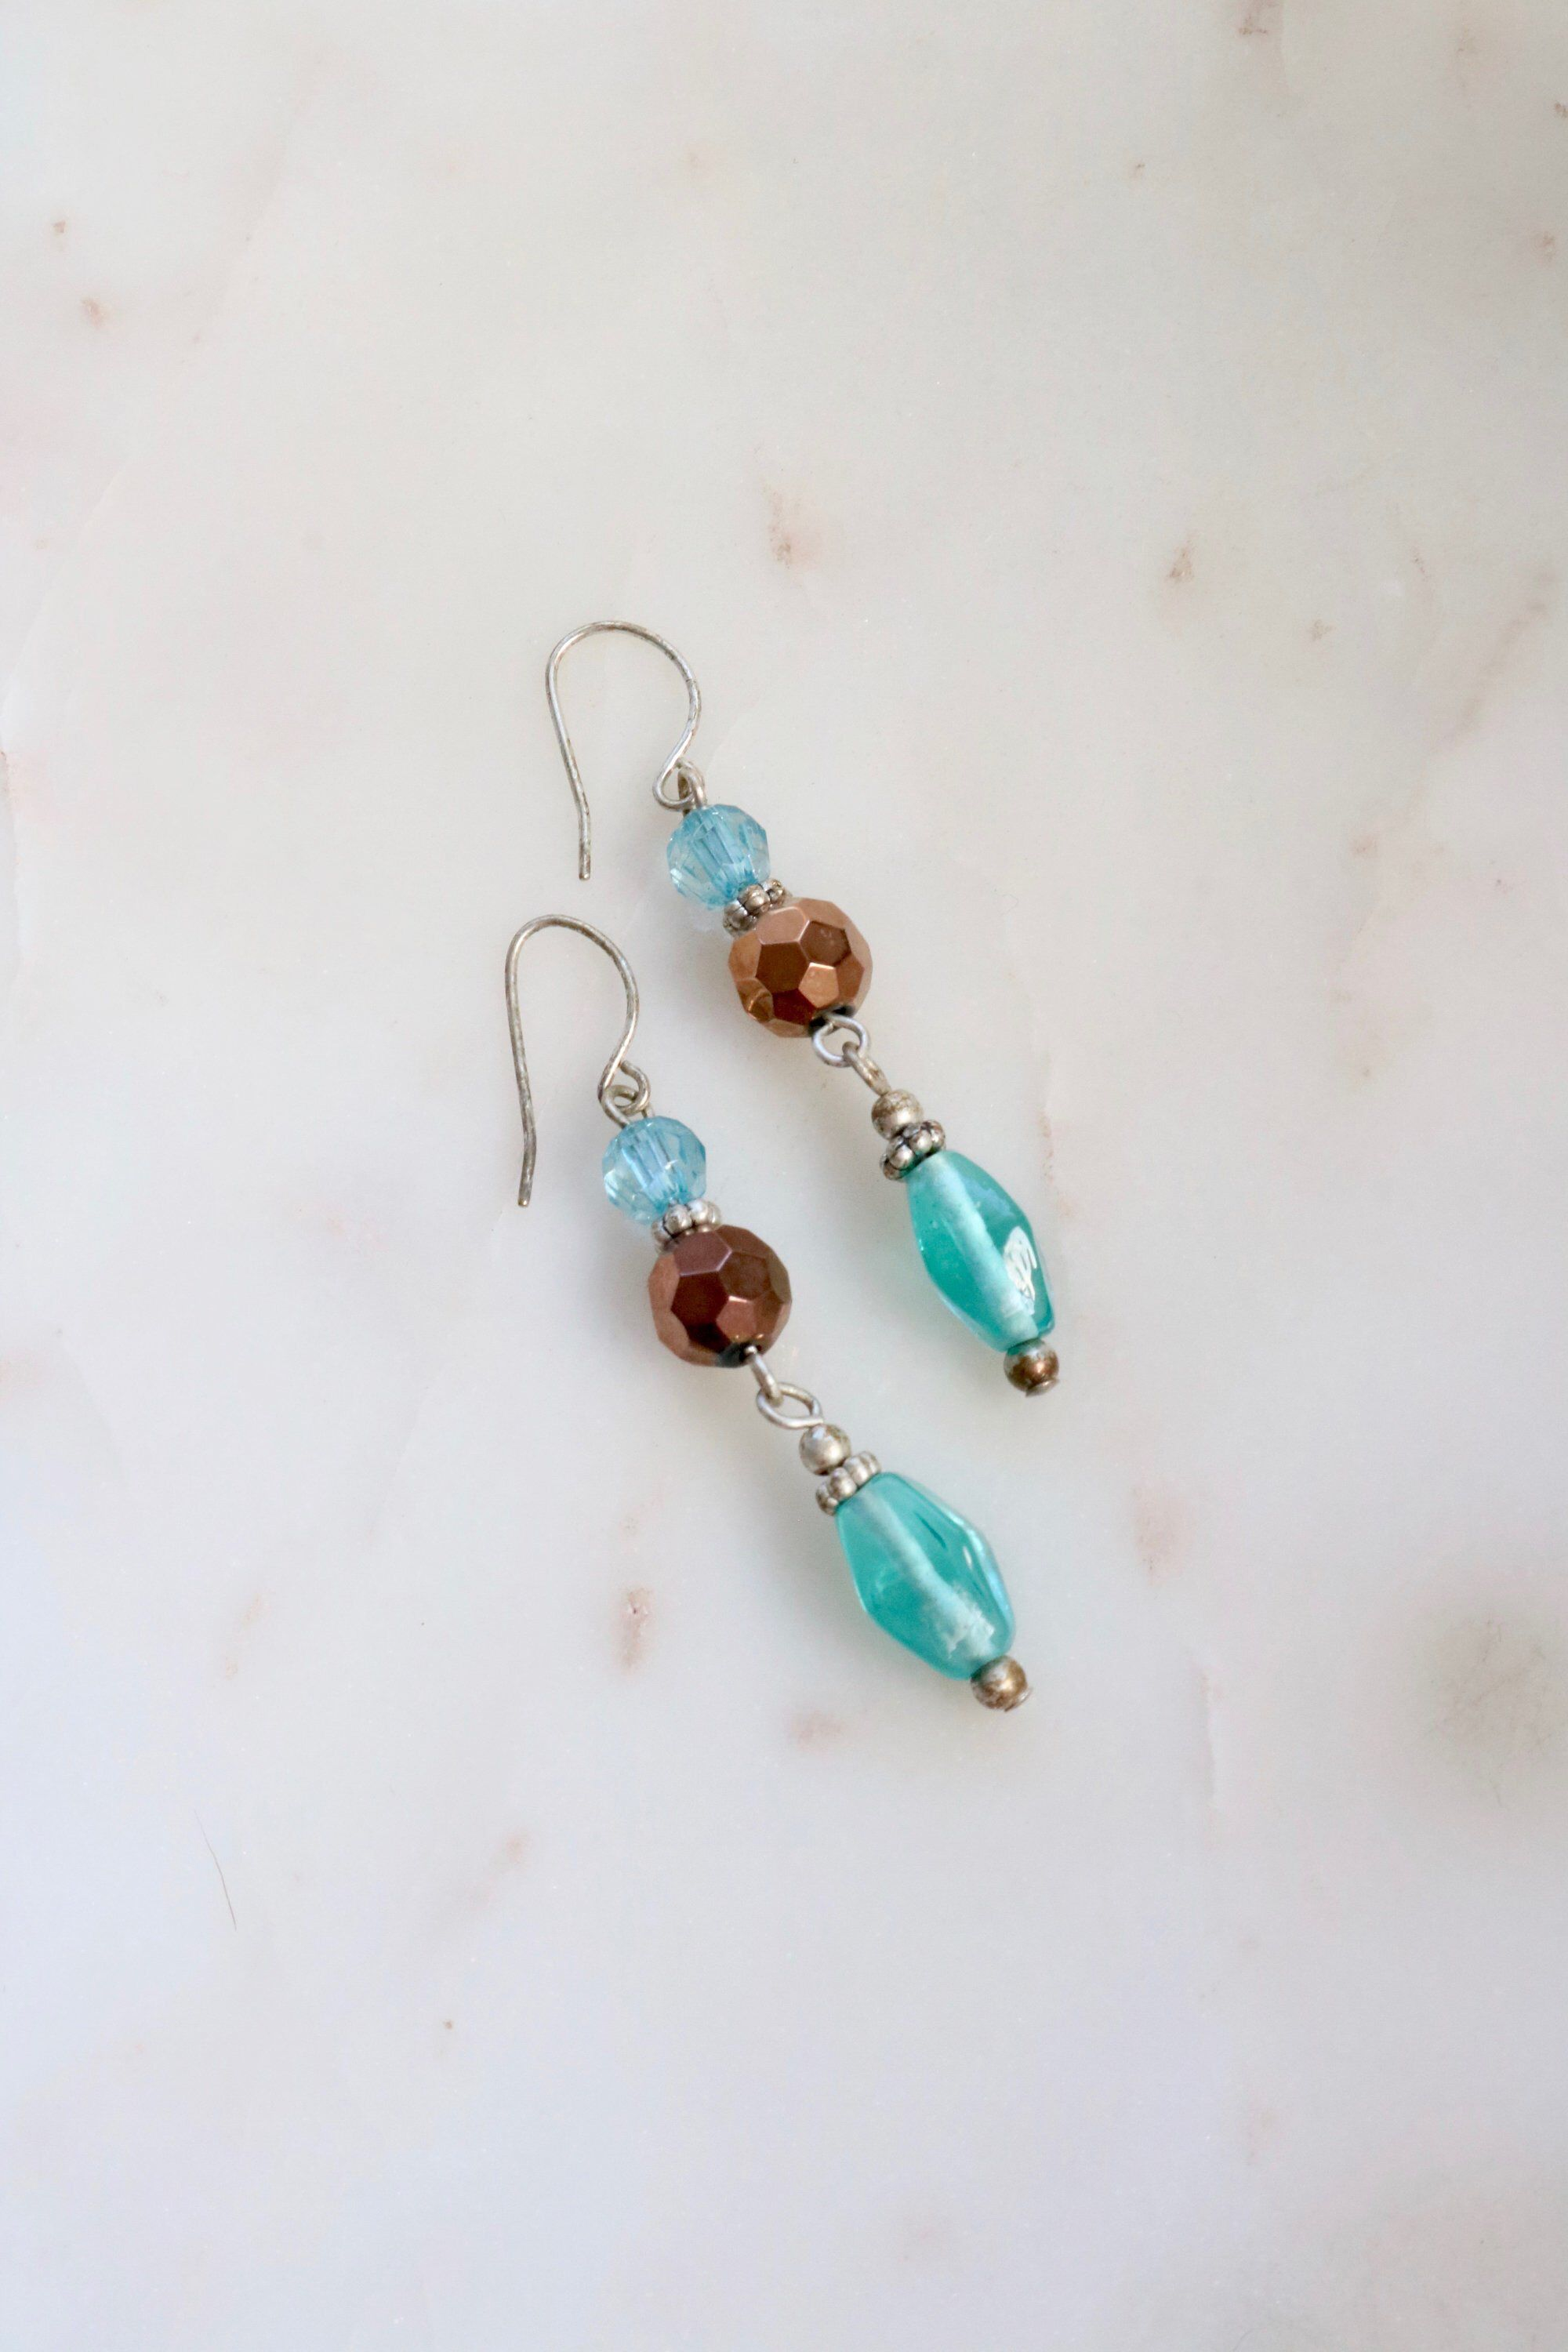 Gorgeous singed vintage glass beads and sterling silver clip on earrings